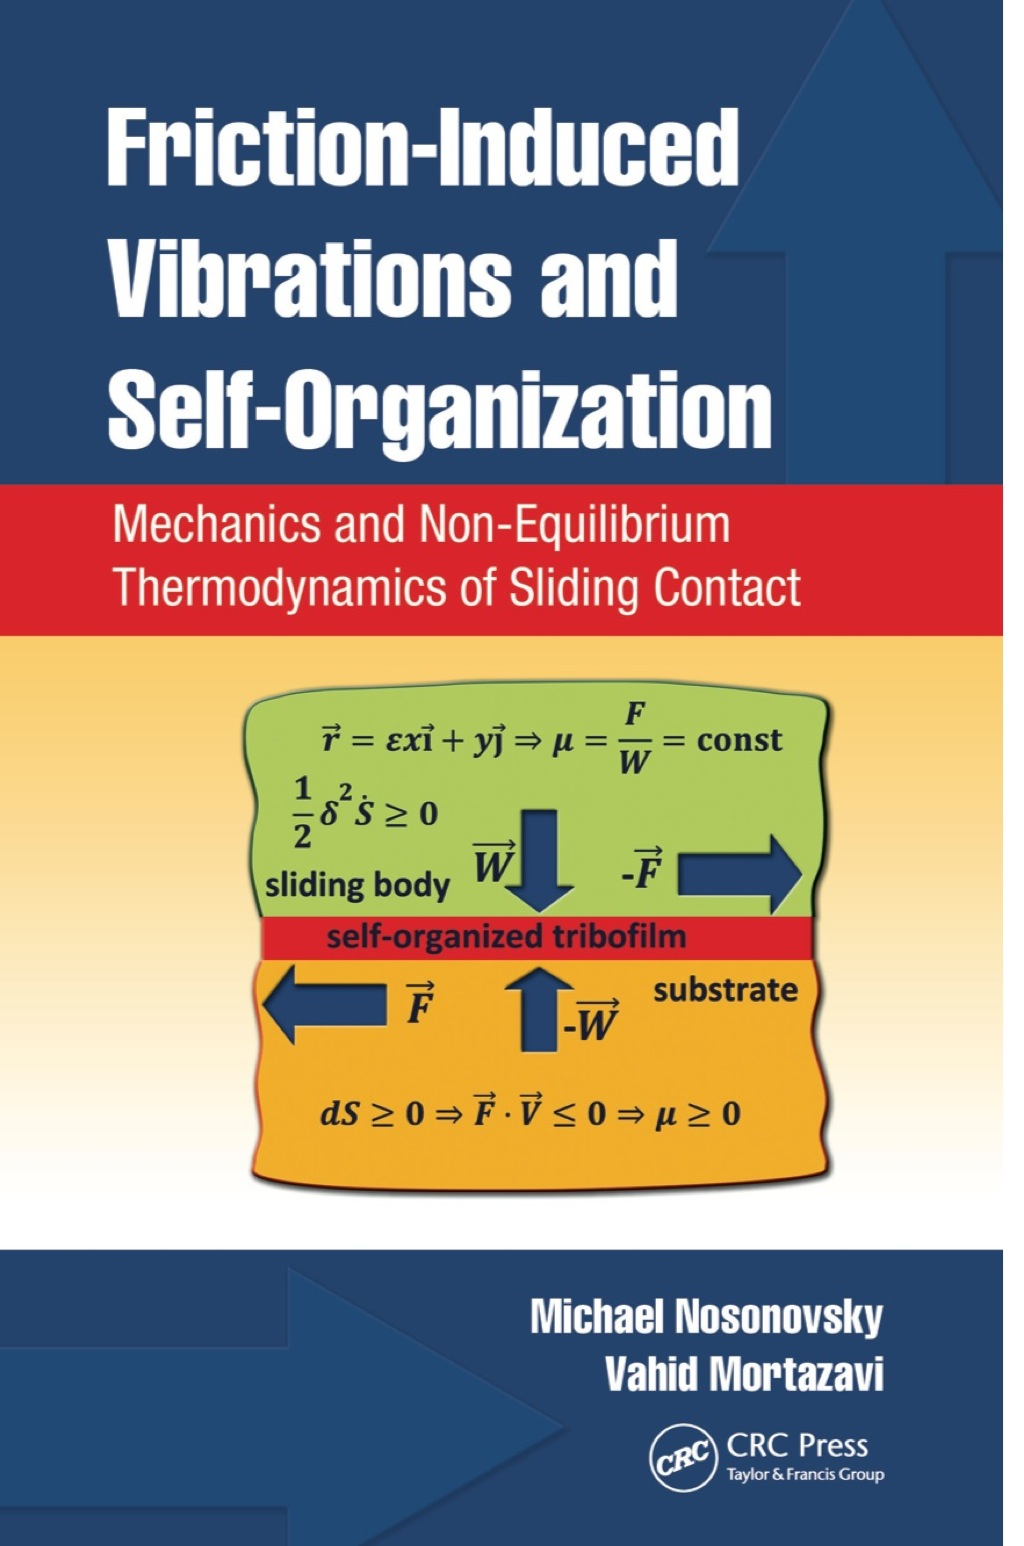 Friction-Induced Vibrations and Self-Organization (ebook) eBooks